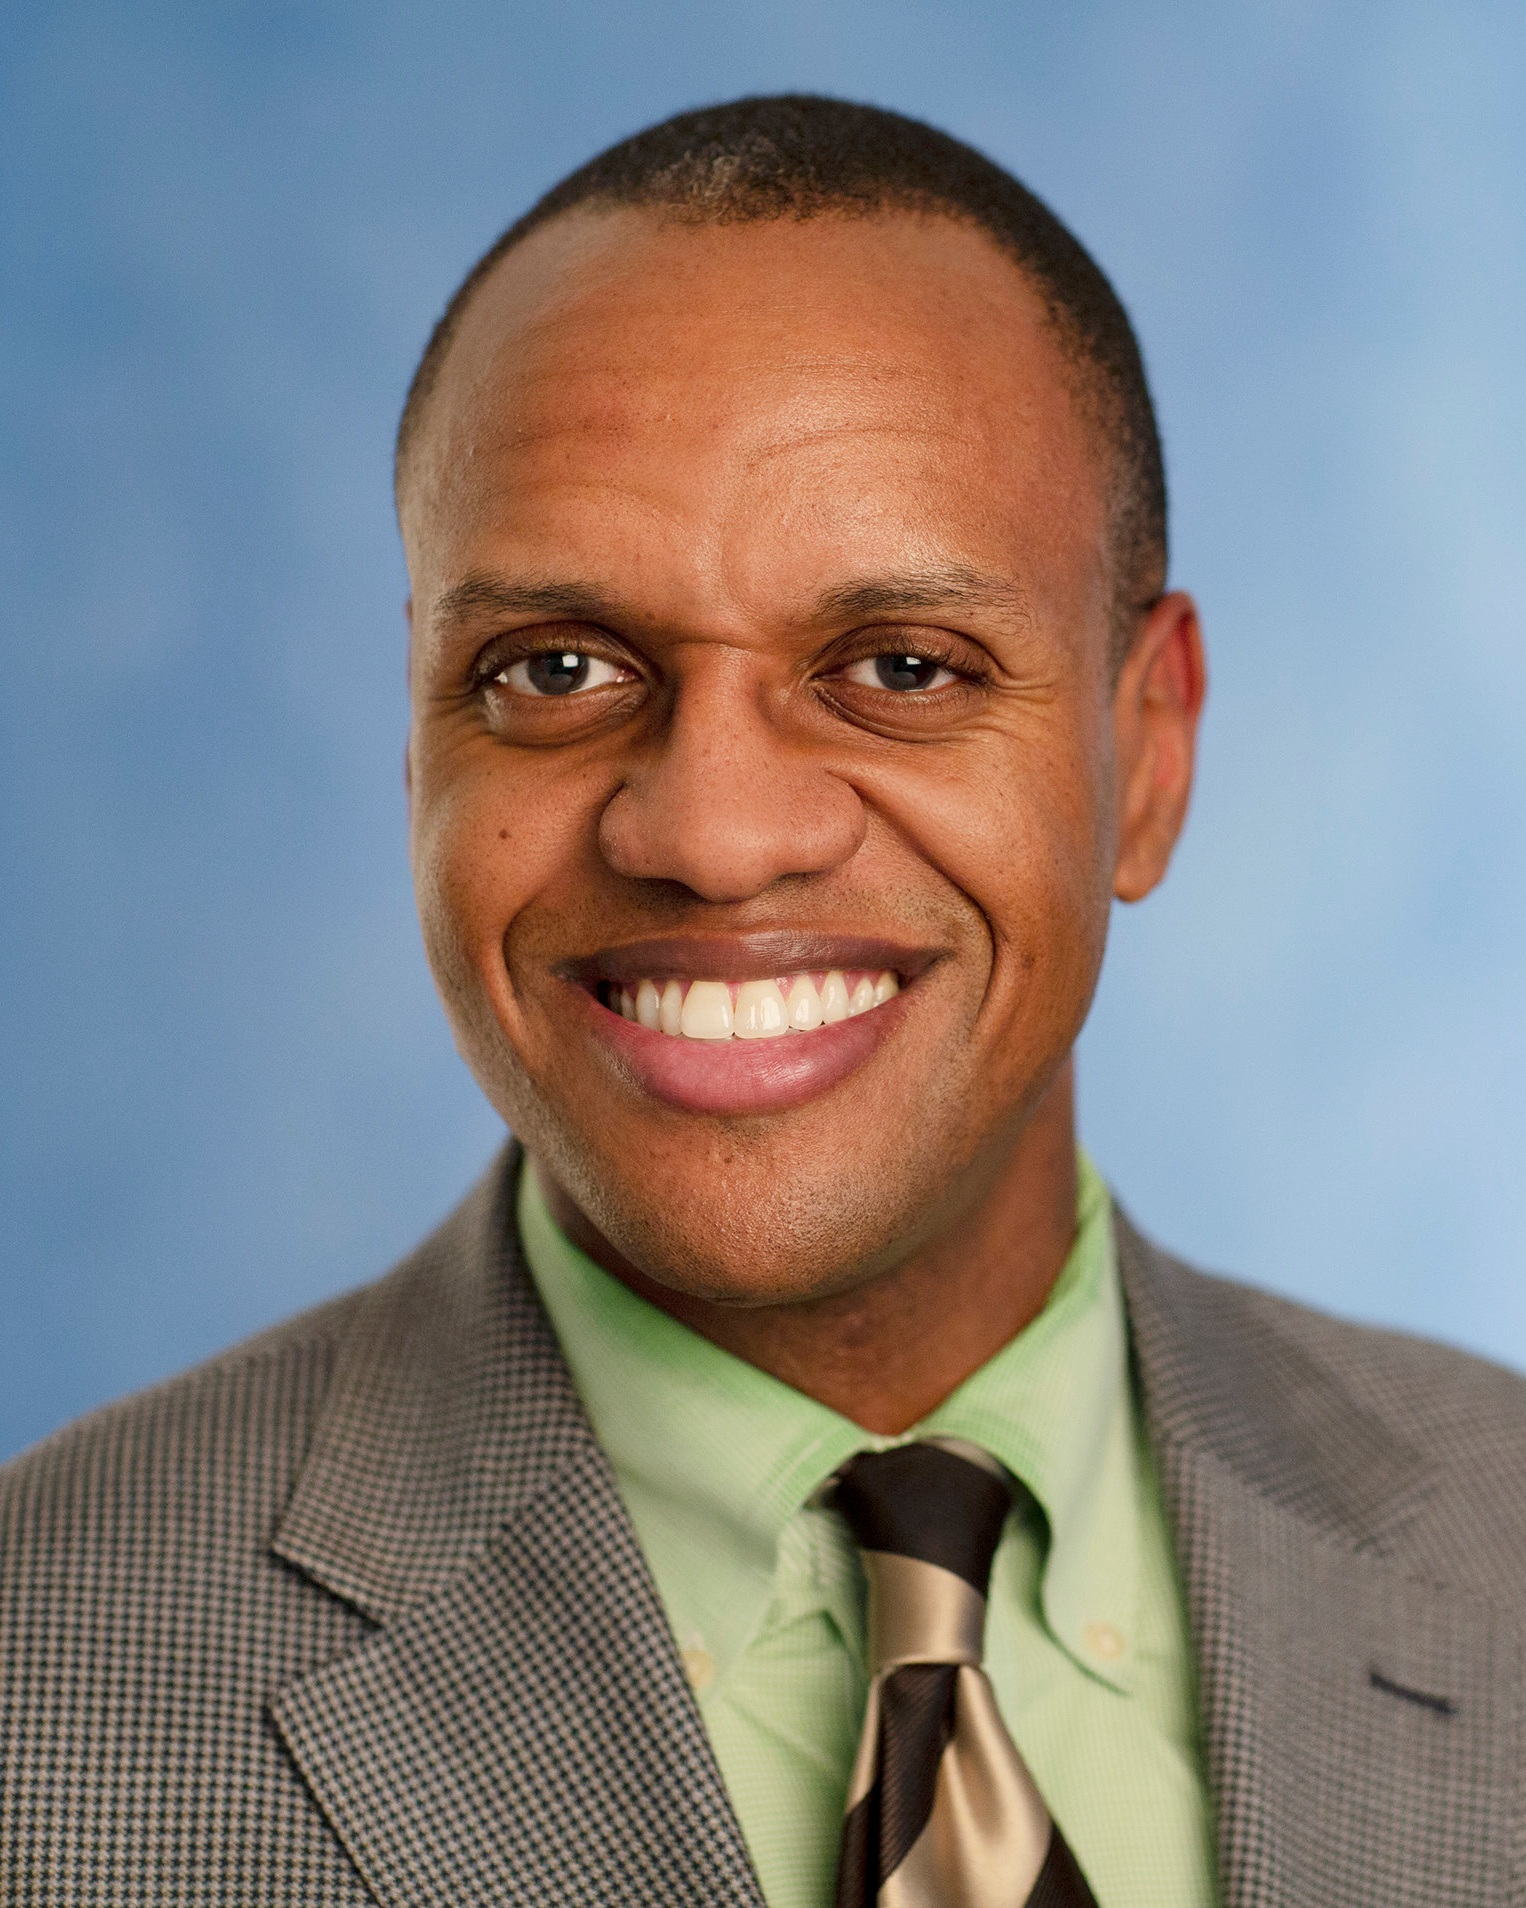 Rahsaan Johnson - Director of Sponsorships and Brand Activation at United Airlines